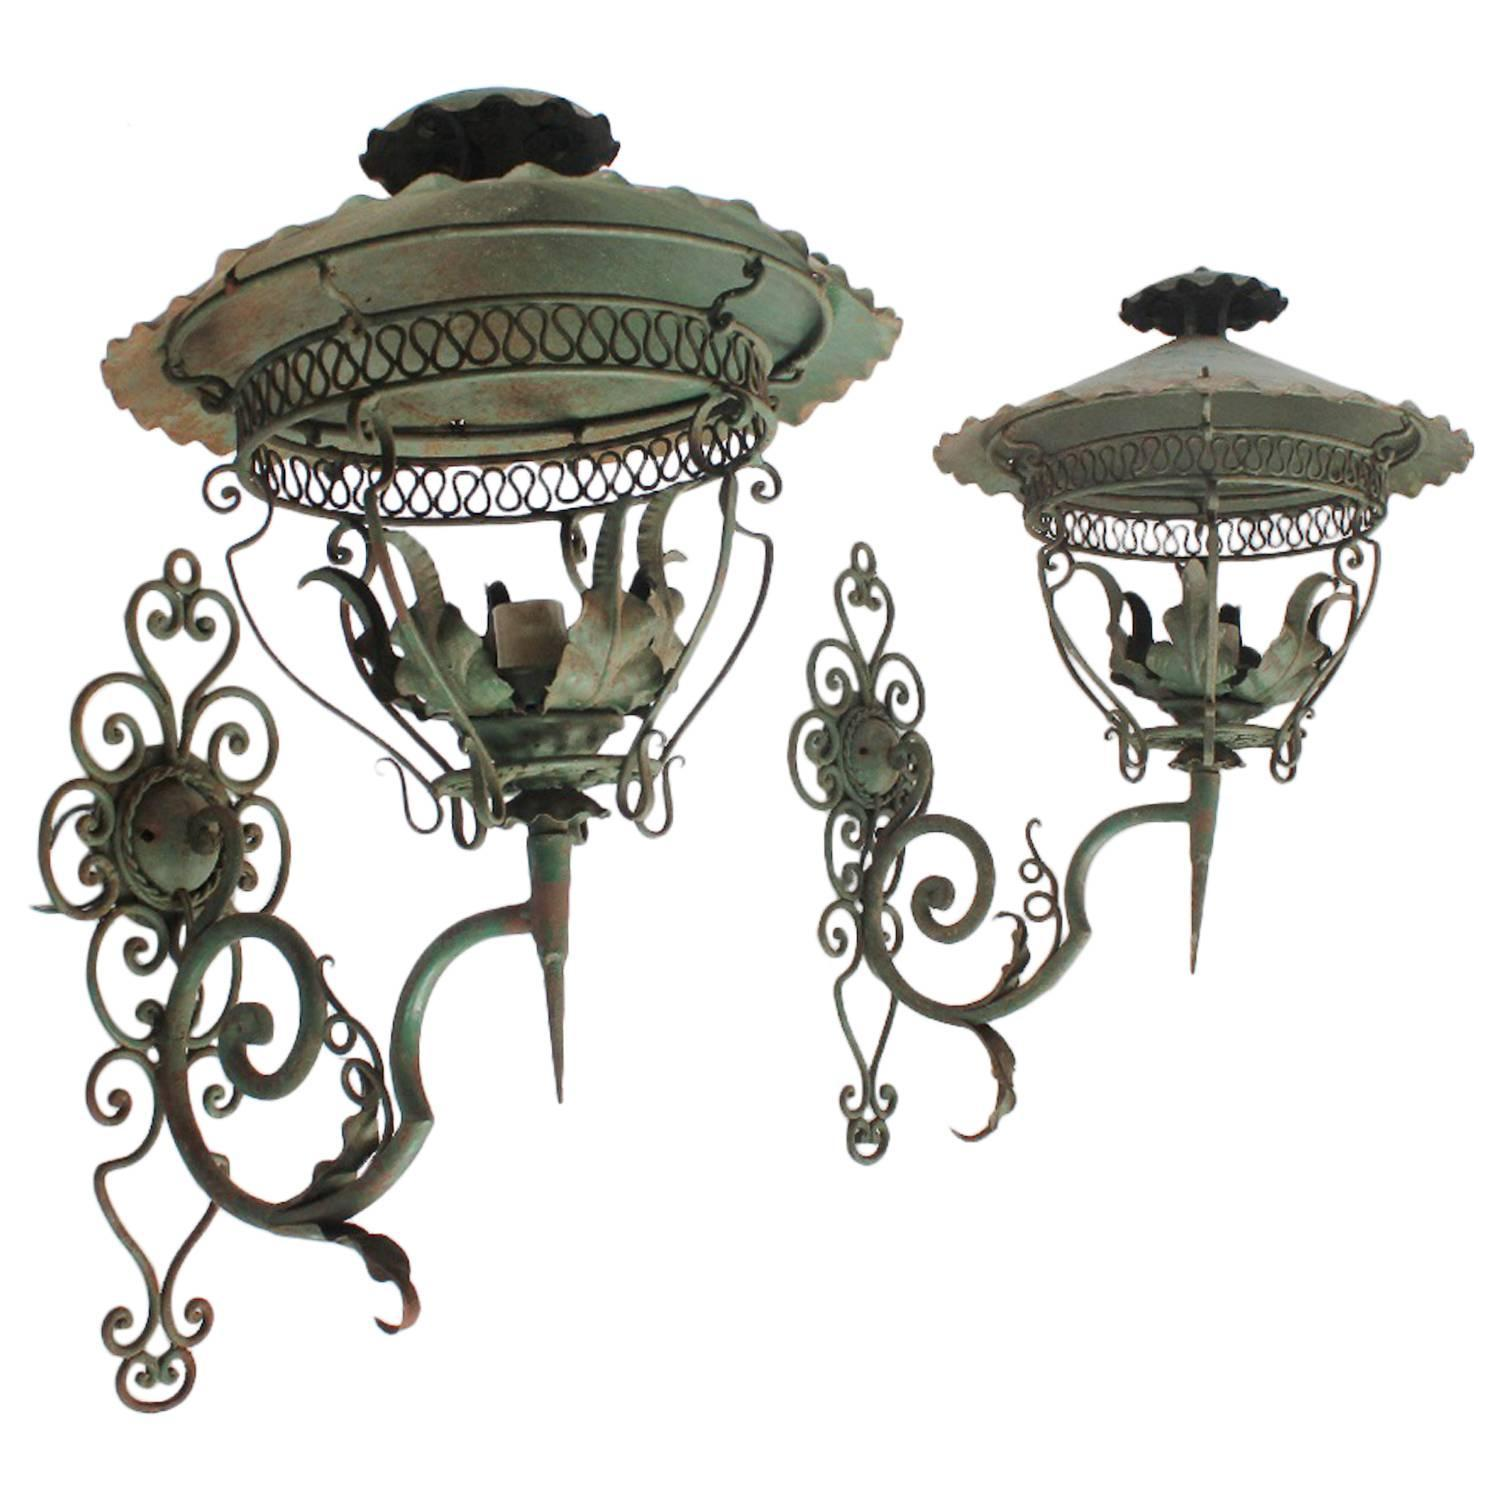 Decorative Antique Wall Sconces : Decorative Antique American Iron Wall Sconces at 1stdibs